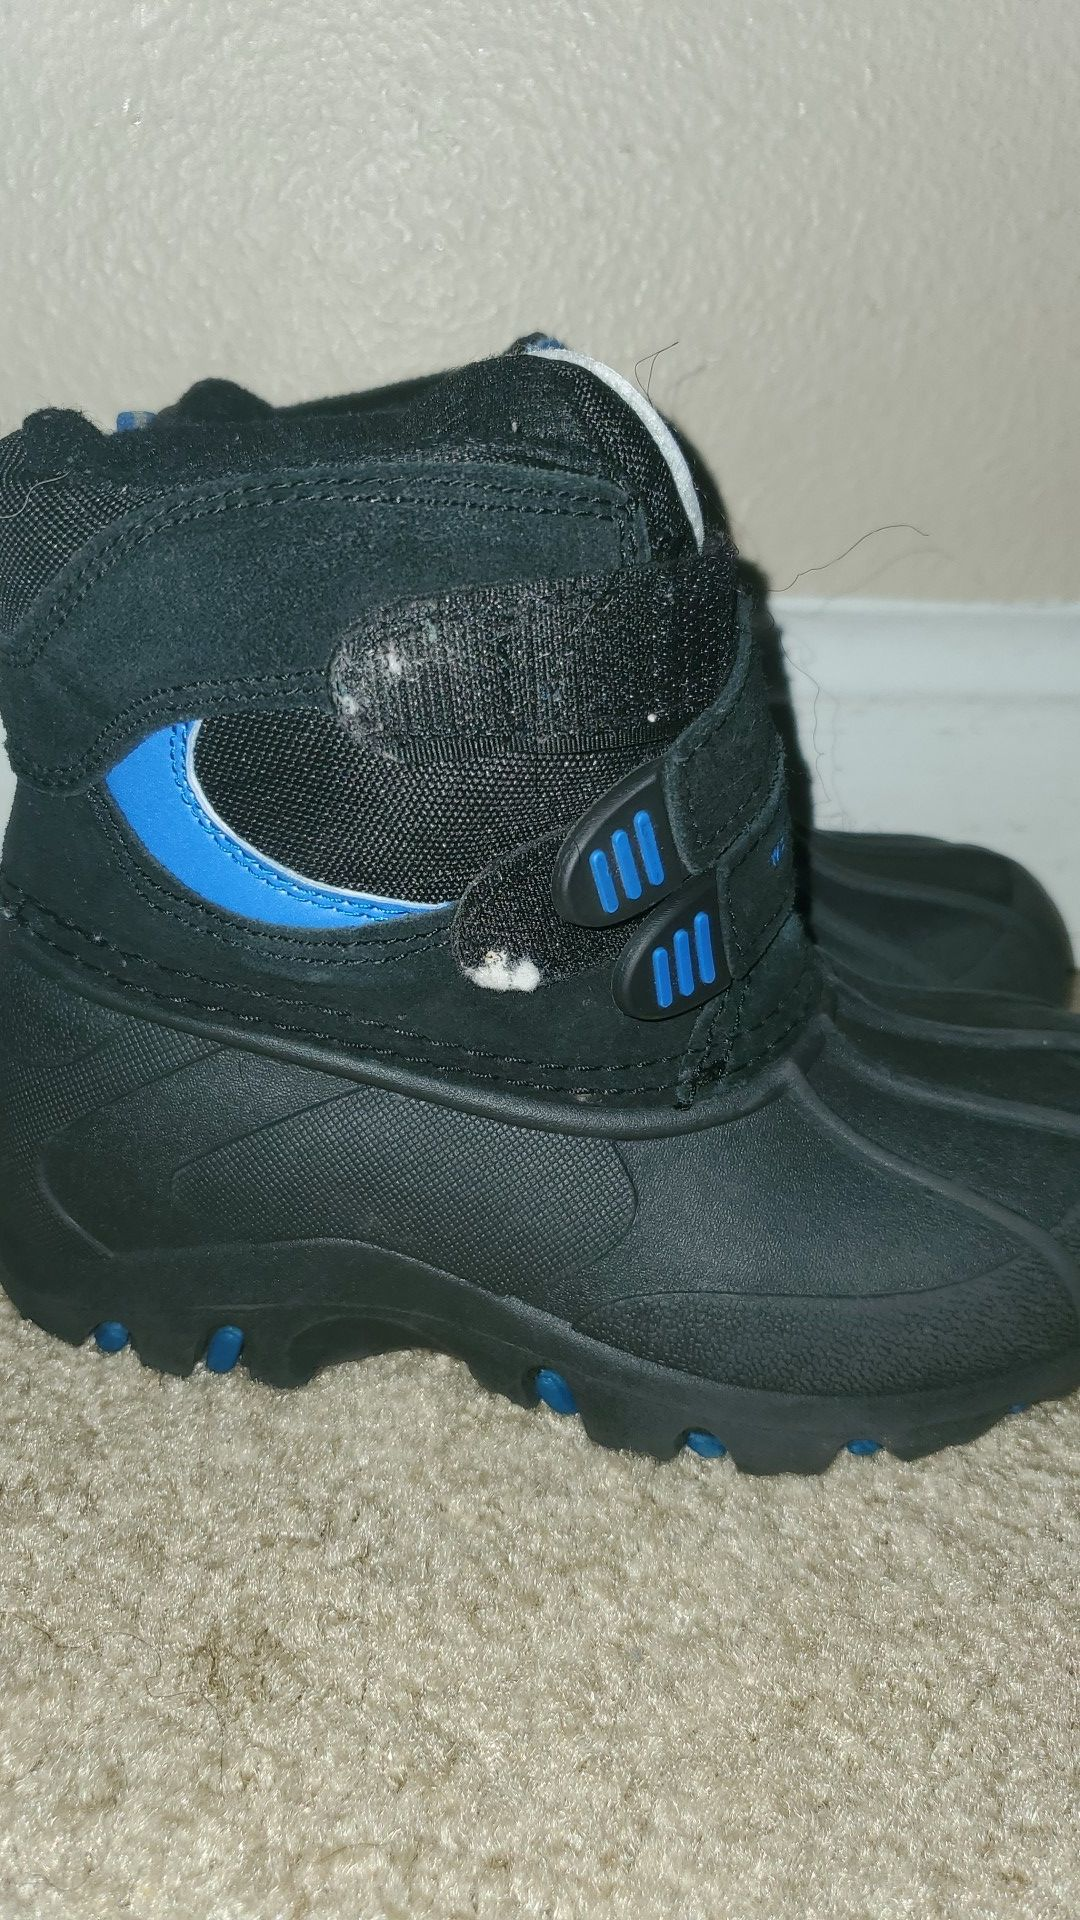 Weatherproof snow boots for toddler boys size 10